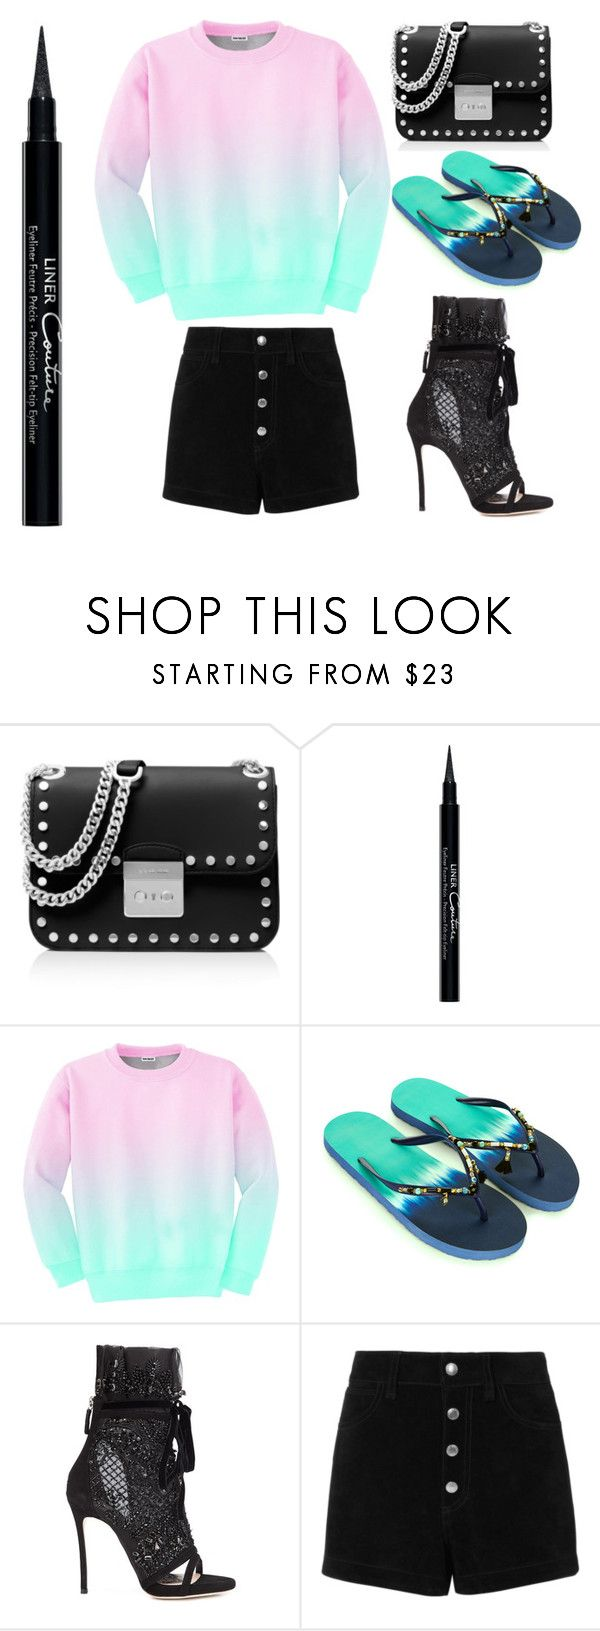 """""""Step into summer!"""" by chloefairweather ❤ liked on Polyvore featuring MICHAEL Michael Kors, Givenchy, Aloha From Deer, Accessorize, Dsquared2 and rag & bone/JEAN"""